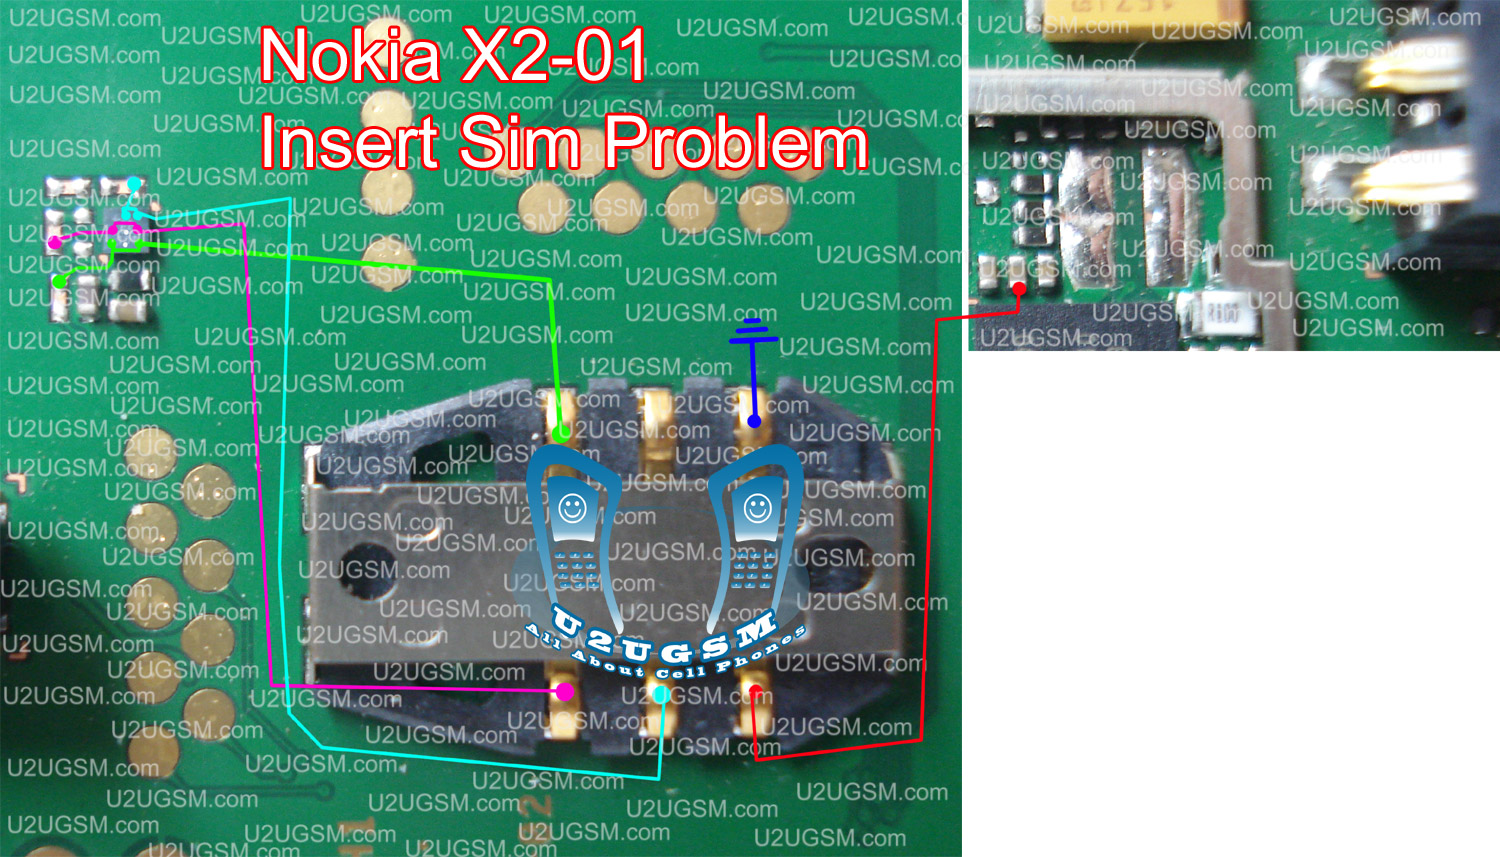 nokia x201 insert sim problem, Sim not working, Sim Missing All sim